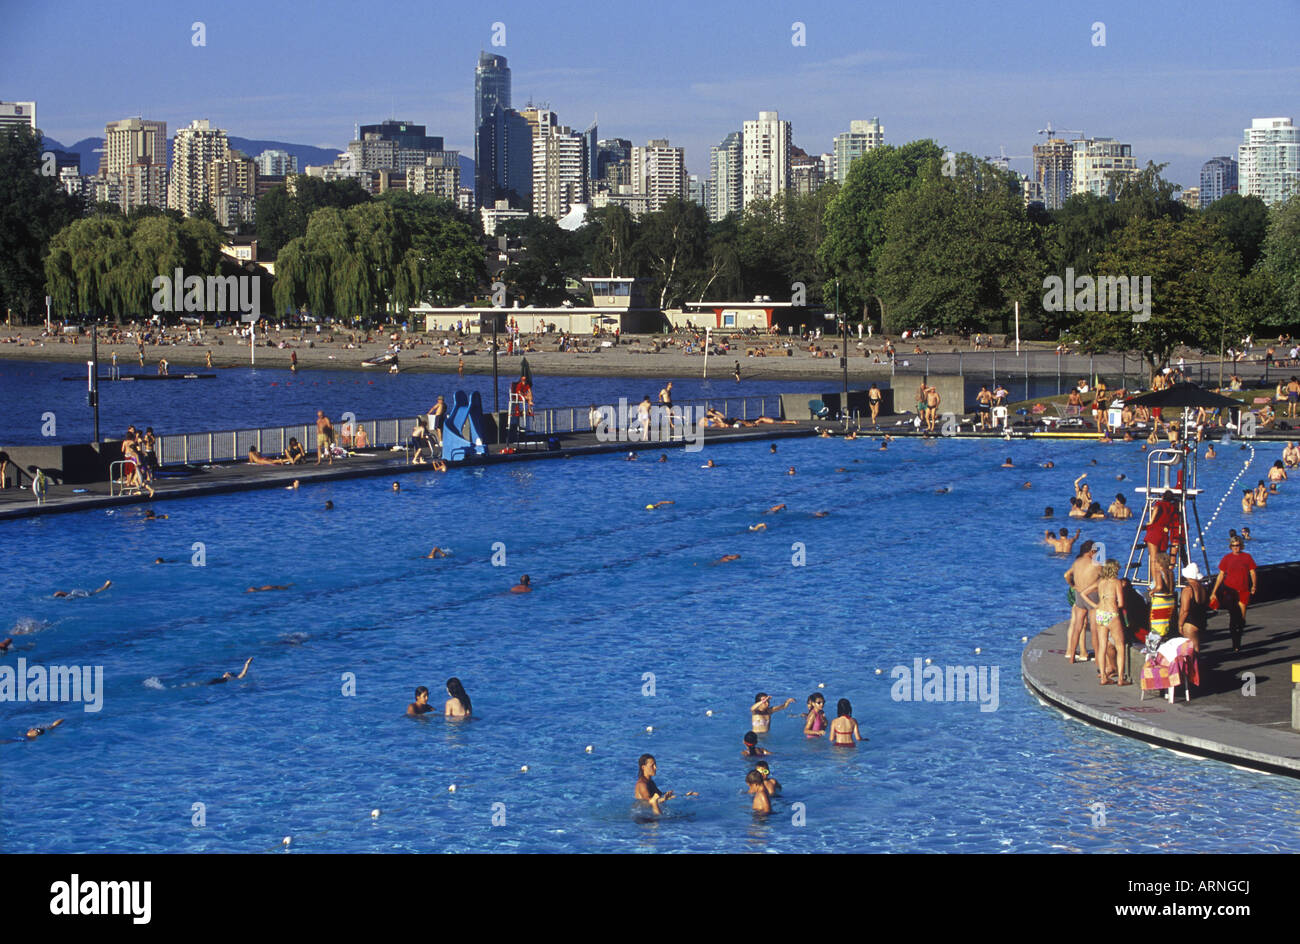 People Enjoying The Kitsilano Outdoor Swimming Pool